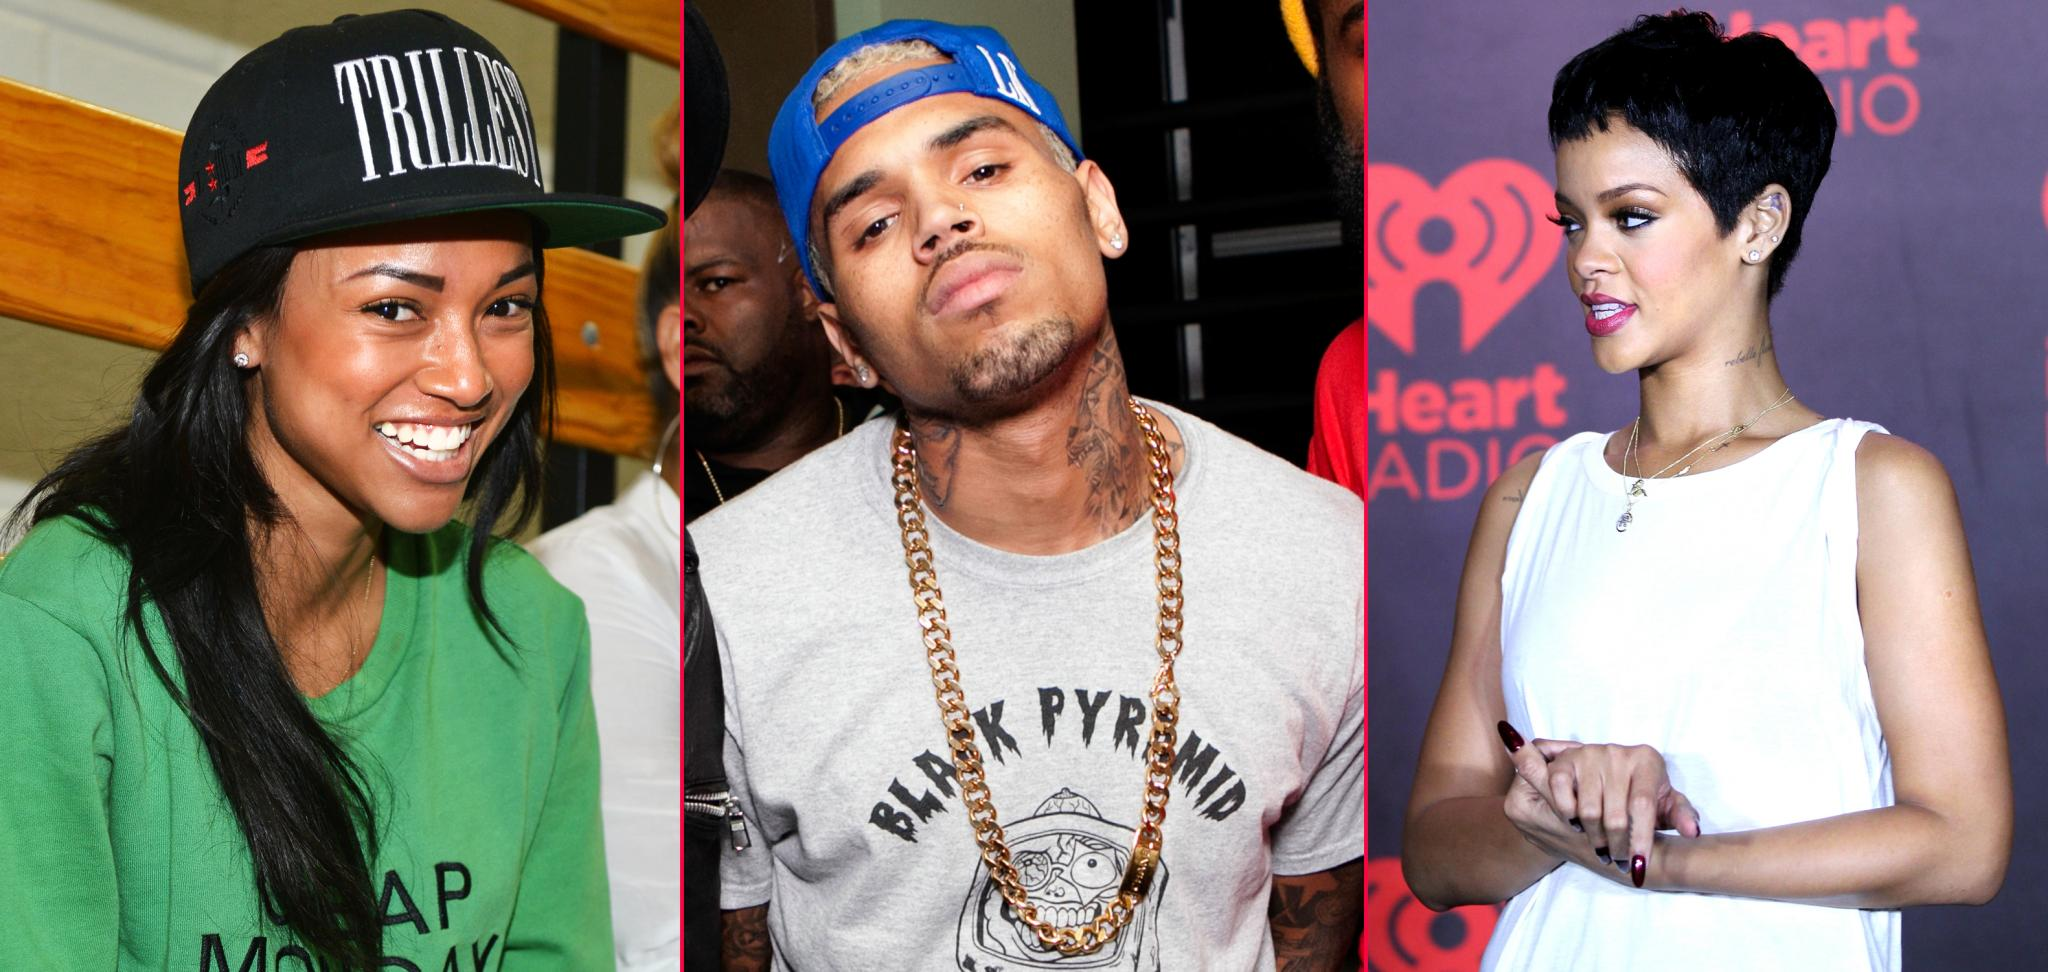 Is chris brown dating rihanna 2019